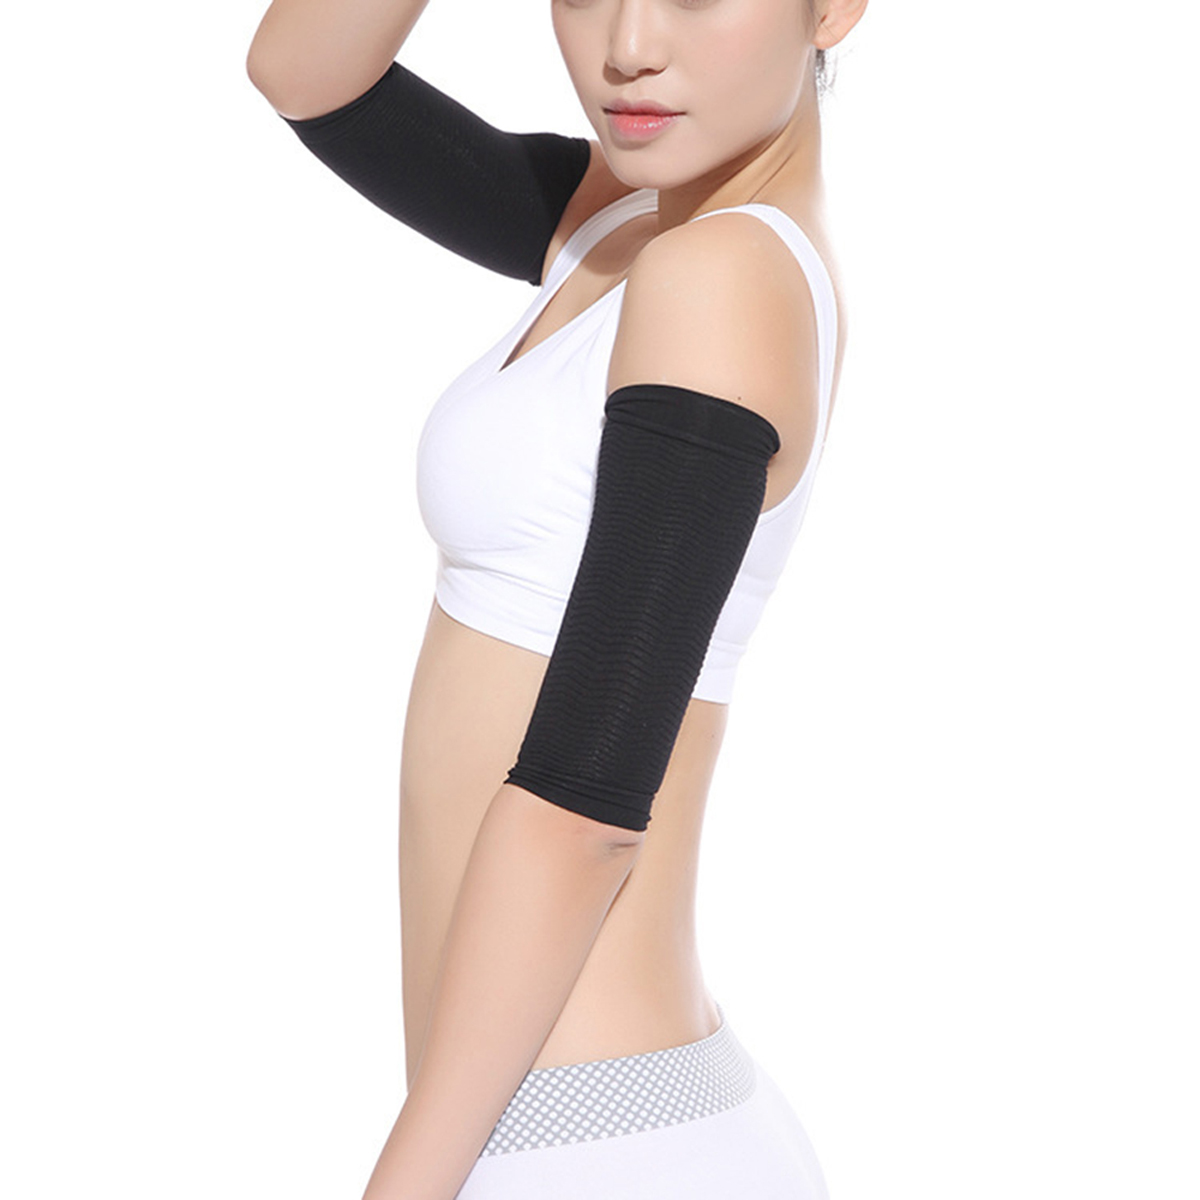 1Pair Women Elastic Compression Arm Warmers Female Slimming Calories Arm Sleeves Support Elbow Sock Massager Arm Wraps